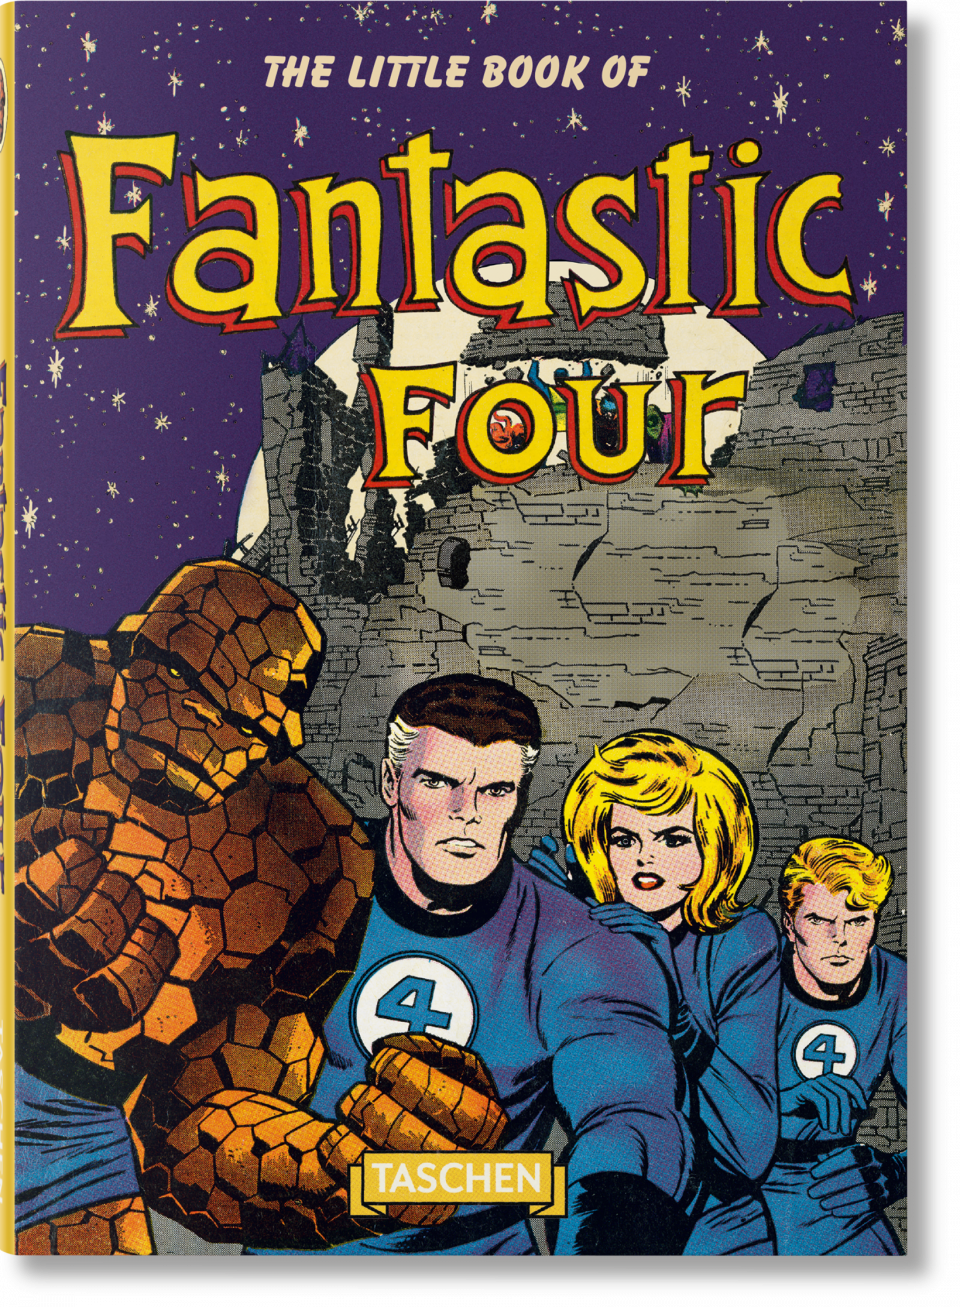 The Little Book of Fantastic Four - Thomas Roy